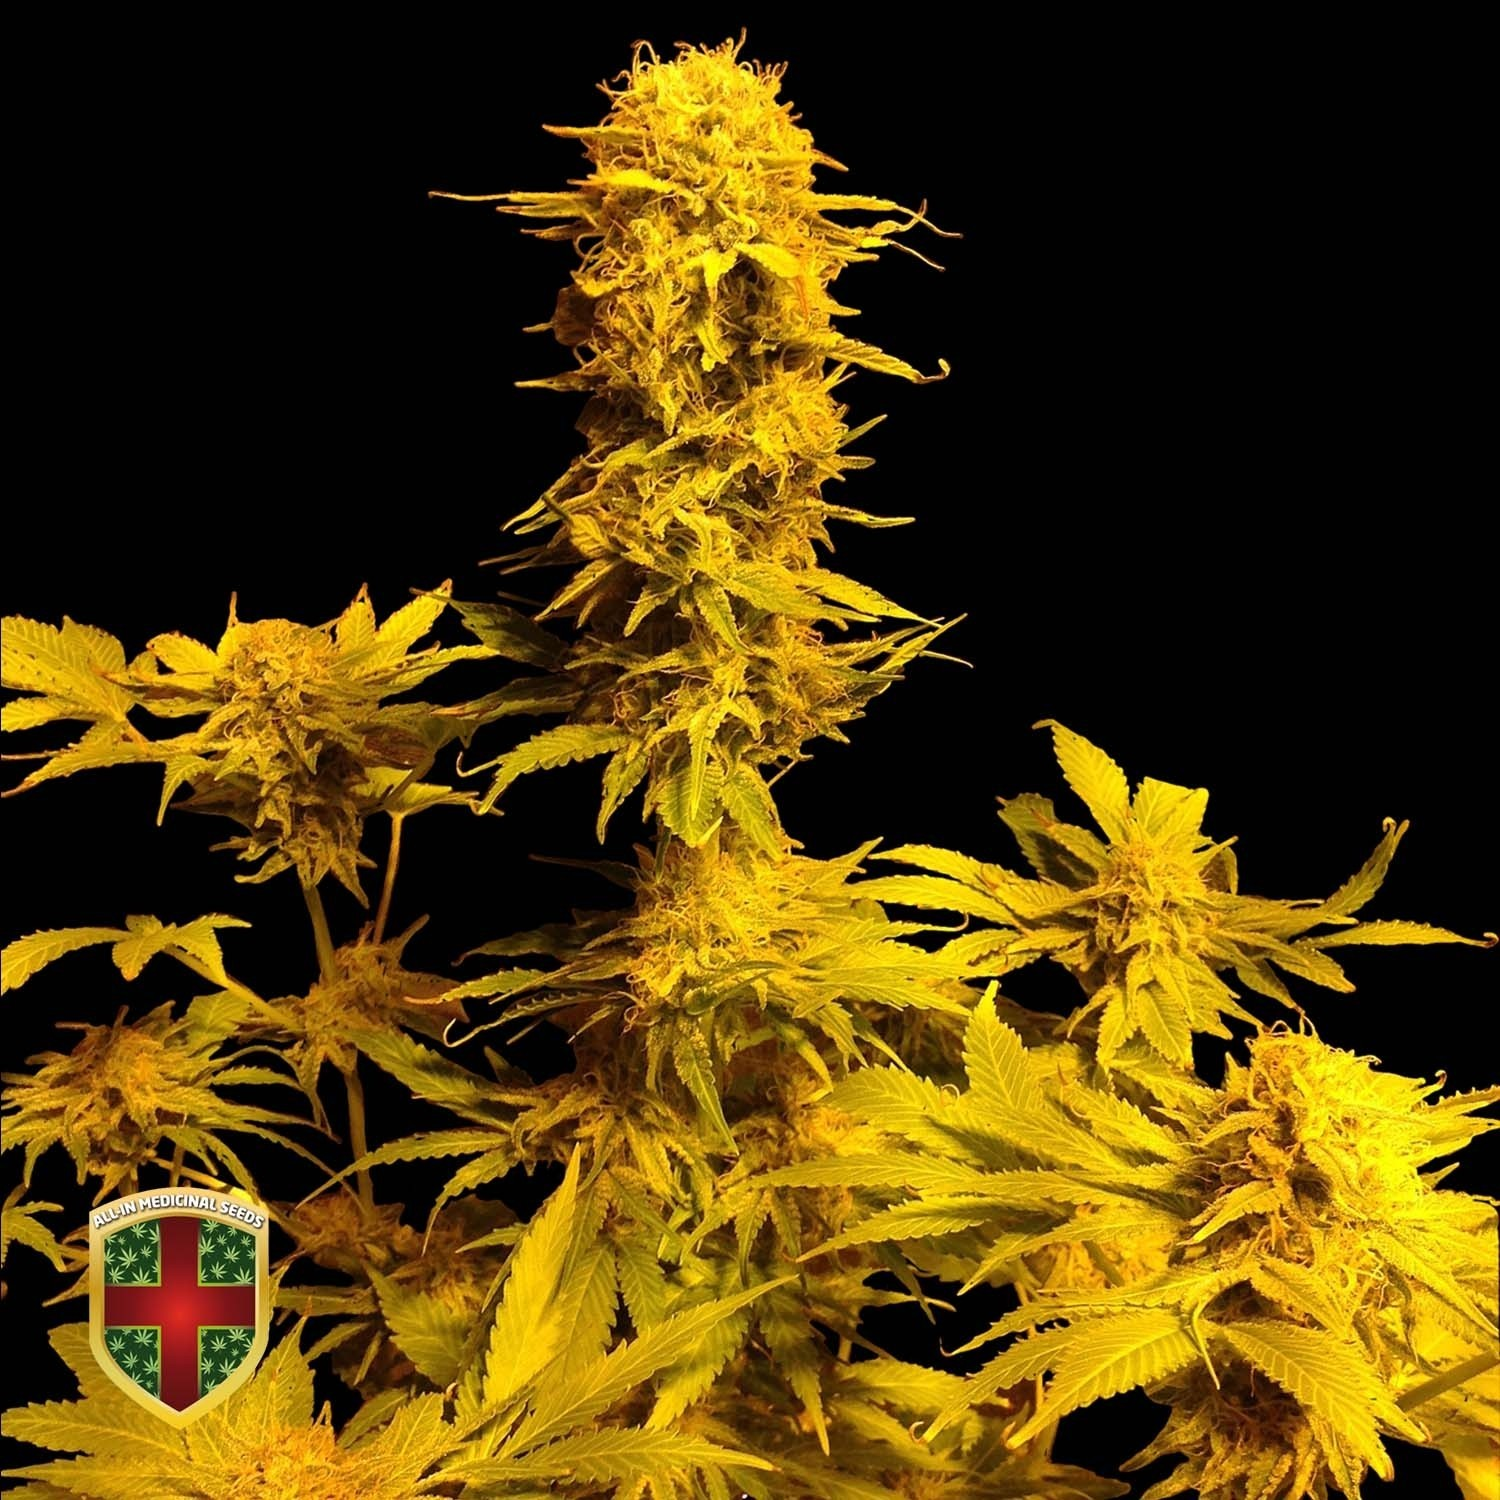 BUBBLE-BOOM - 1 UNDS. FEM - ALL IN MEDICINAL - ALL-IN MEDICINAL SEEDS